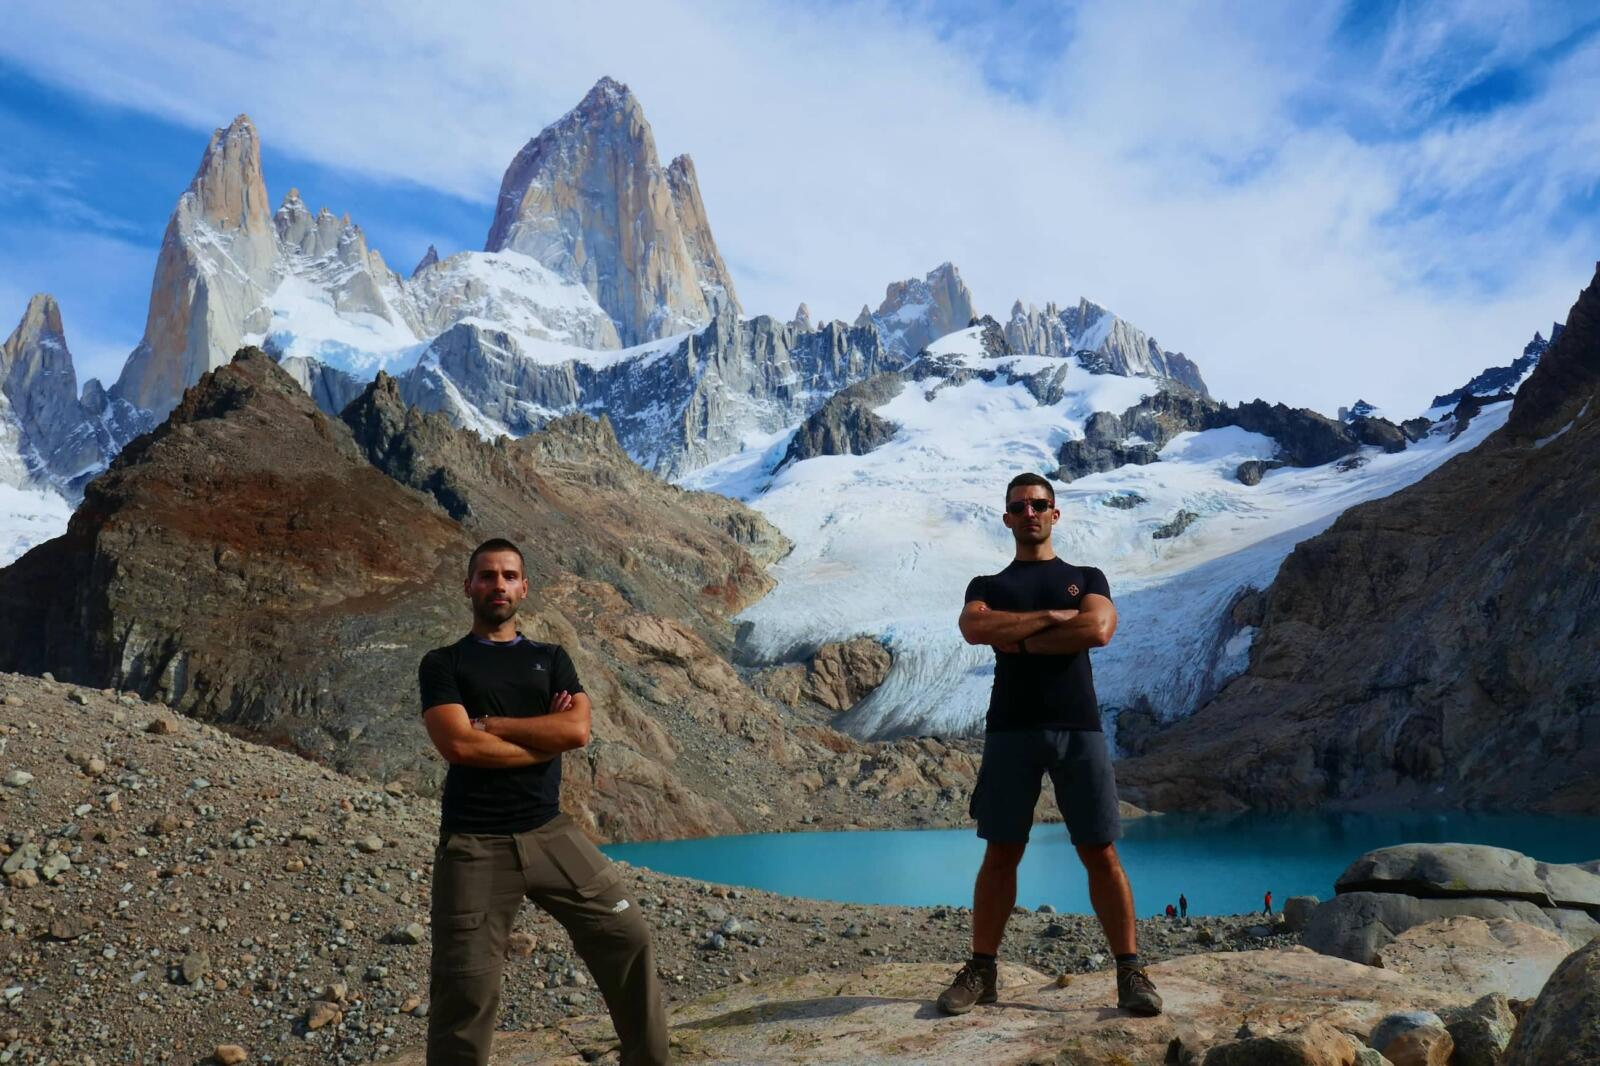 Trekking in Patagonia, a highlight of South America.